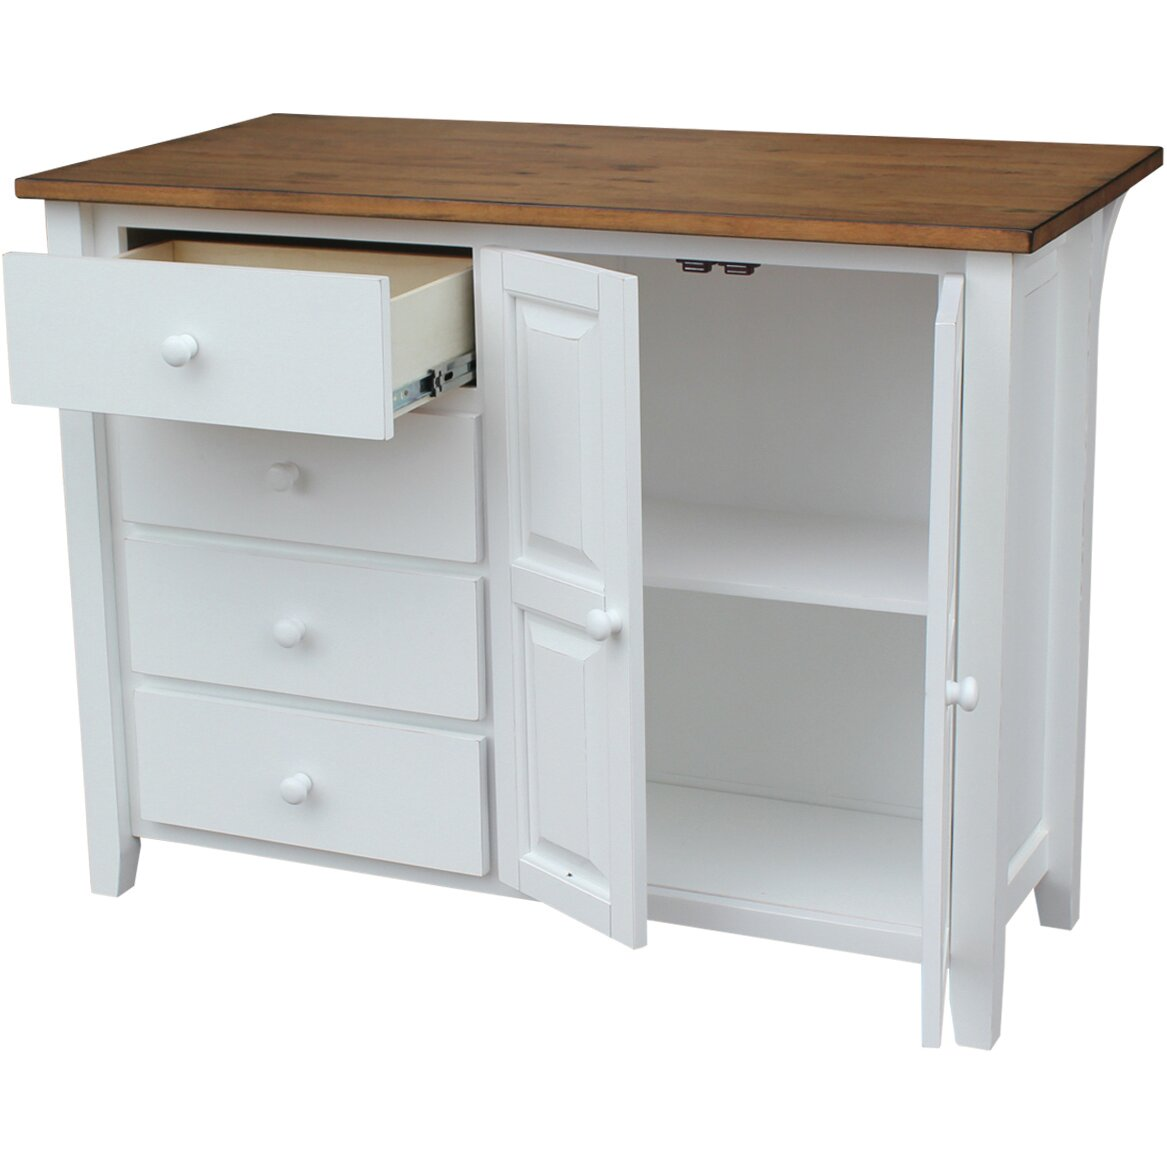 Just cabinets belmont kitchen island wayfair for Kitchen island with cupboards